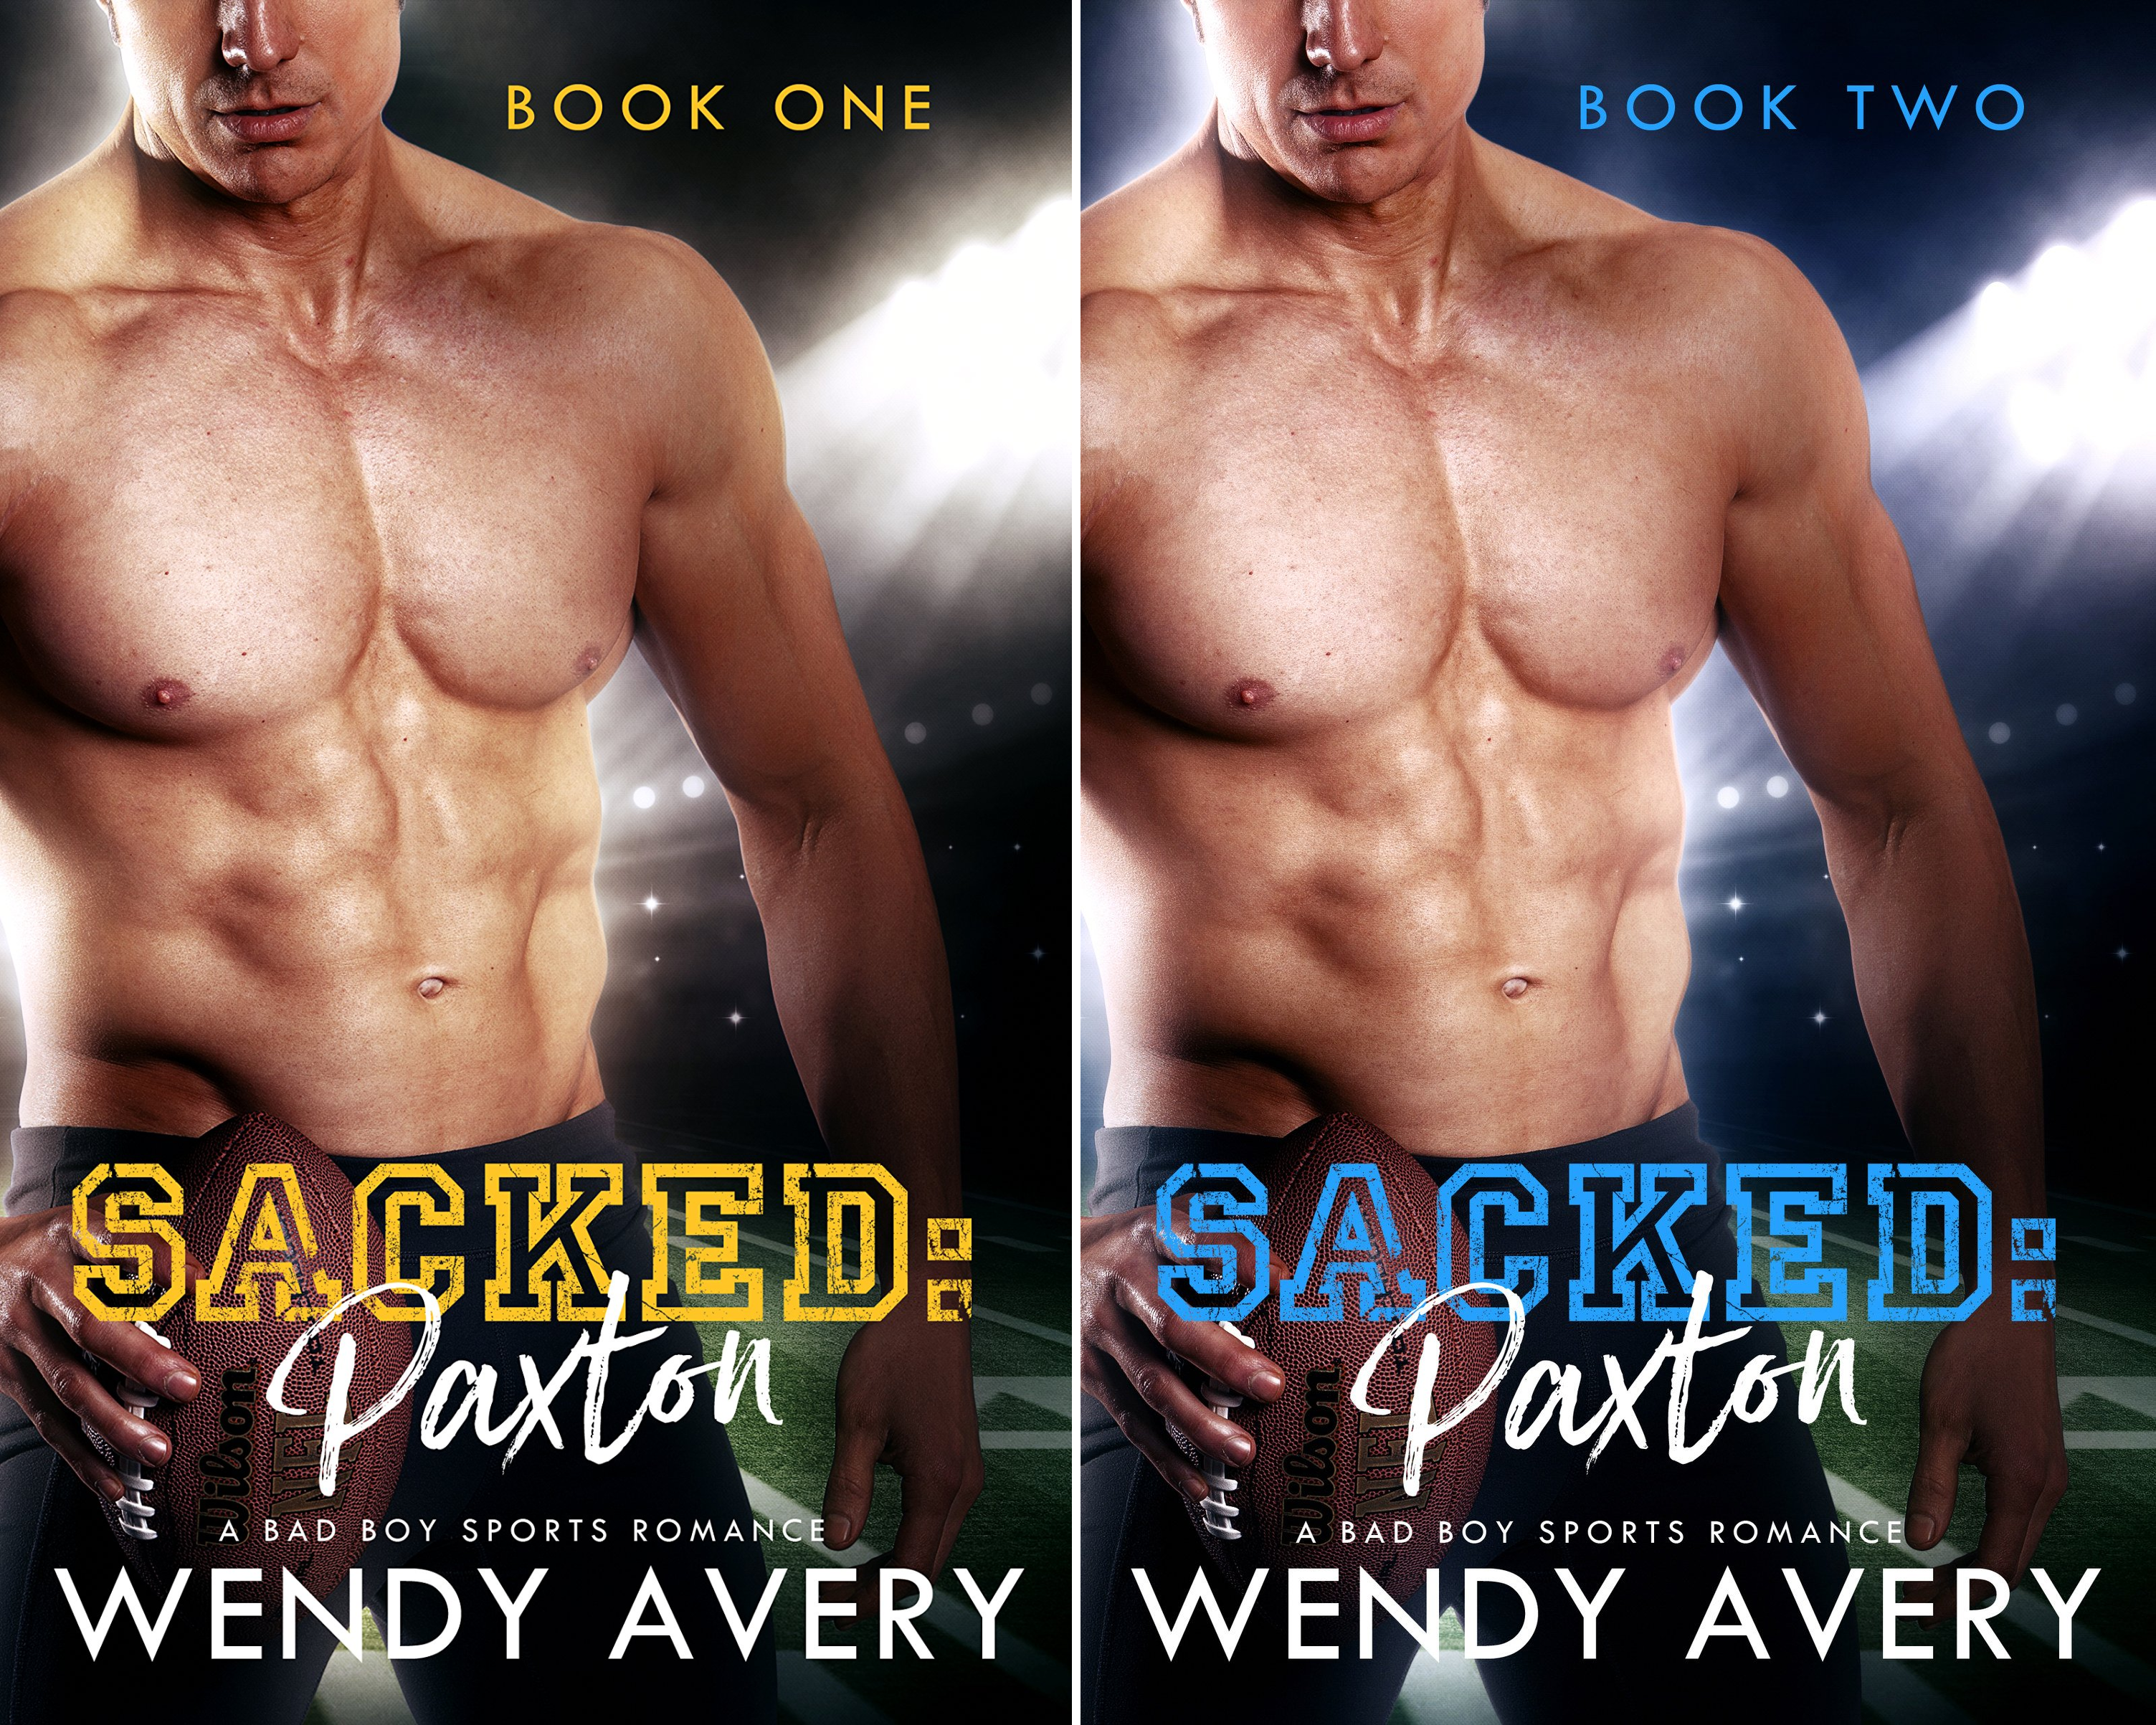 Sacked Paxton (2 Book Series)